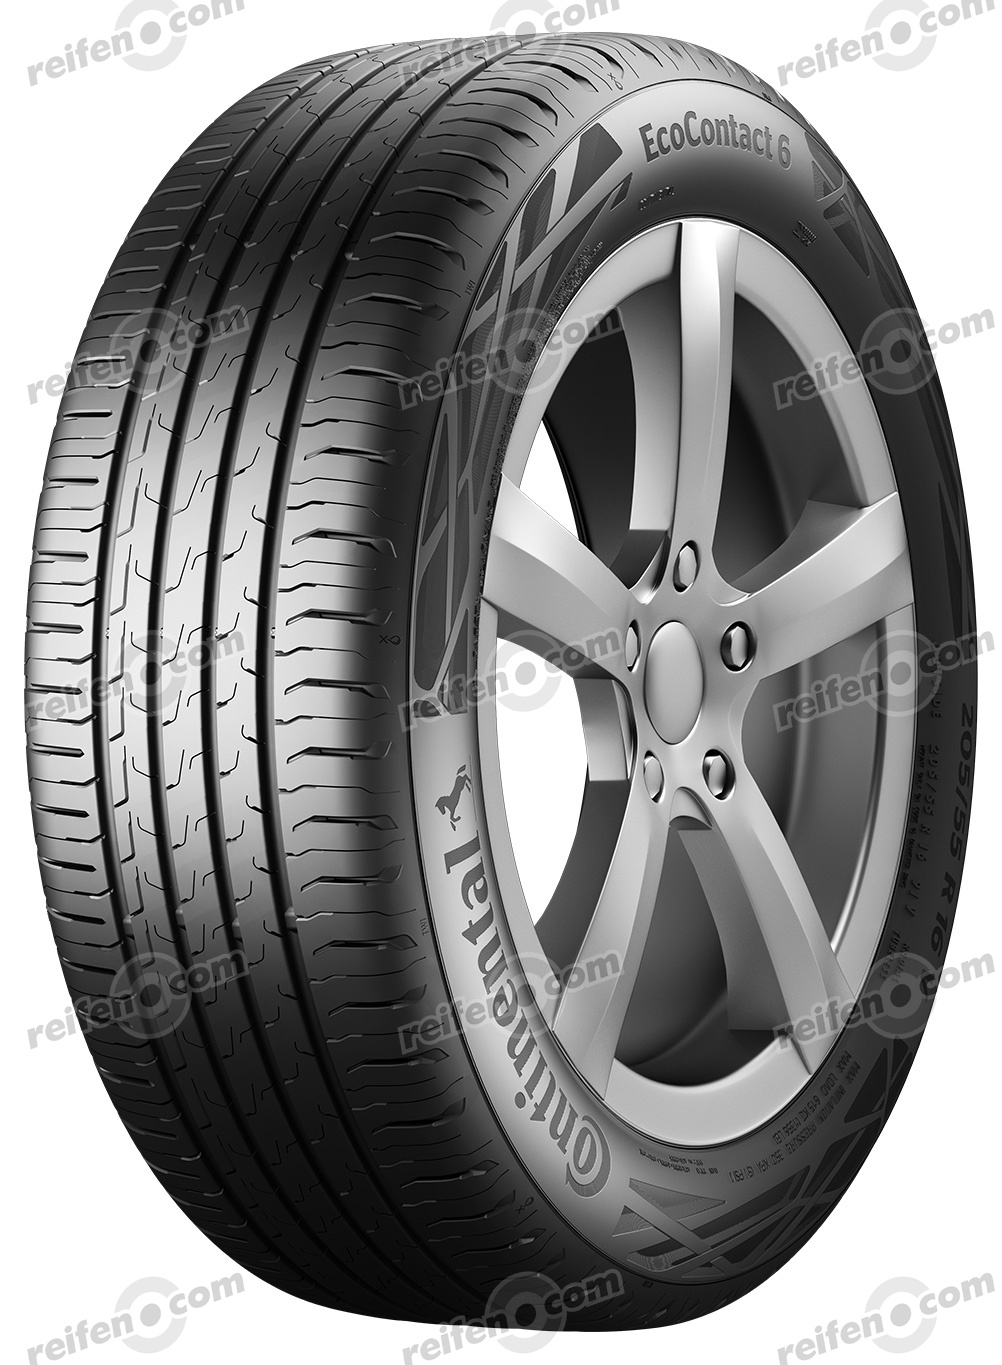 225/60 R15 96W EcoContact 6  EcoContact 6